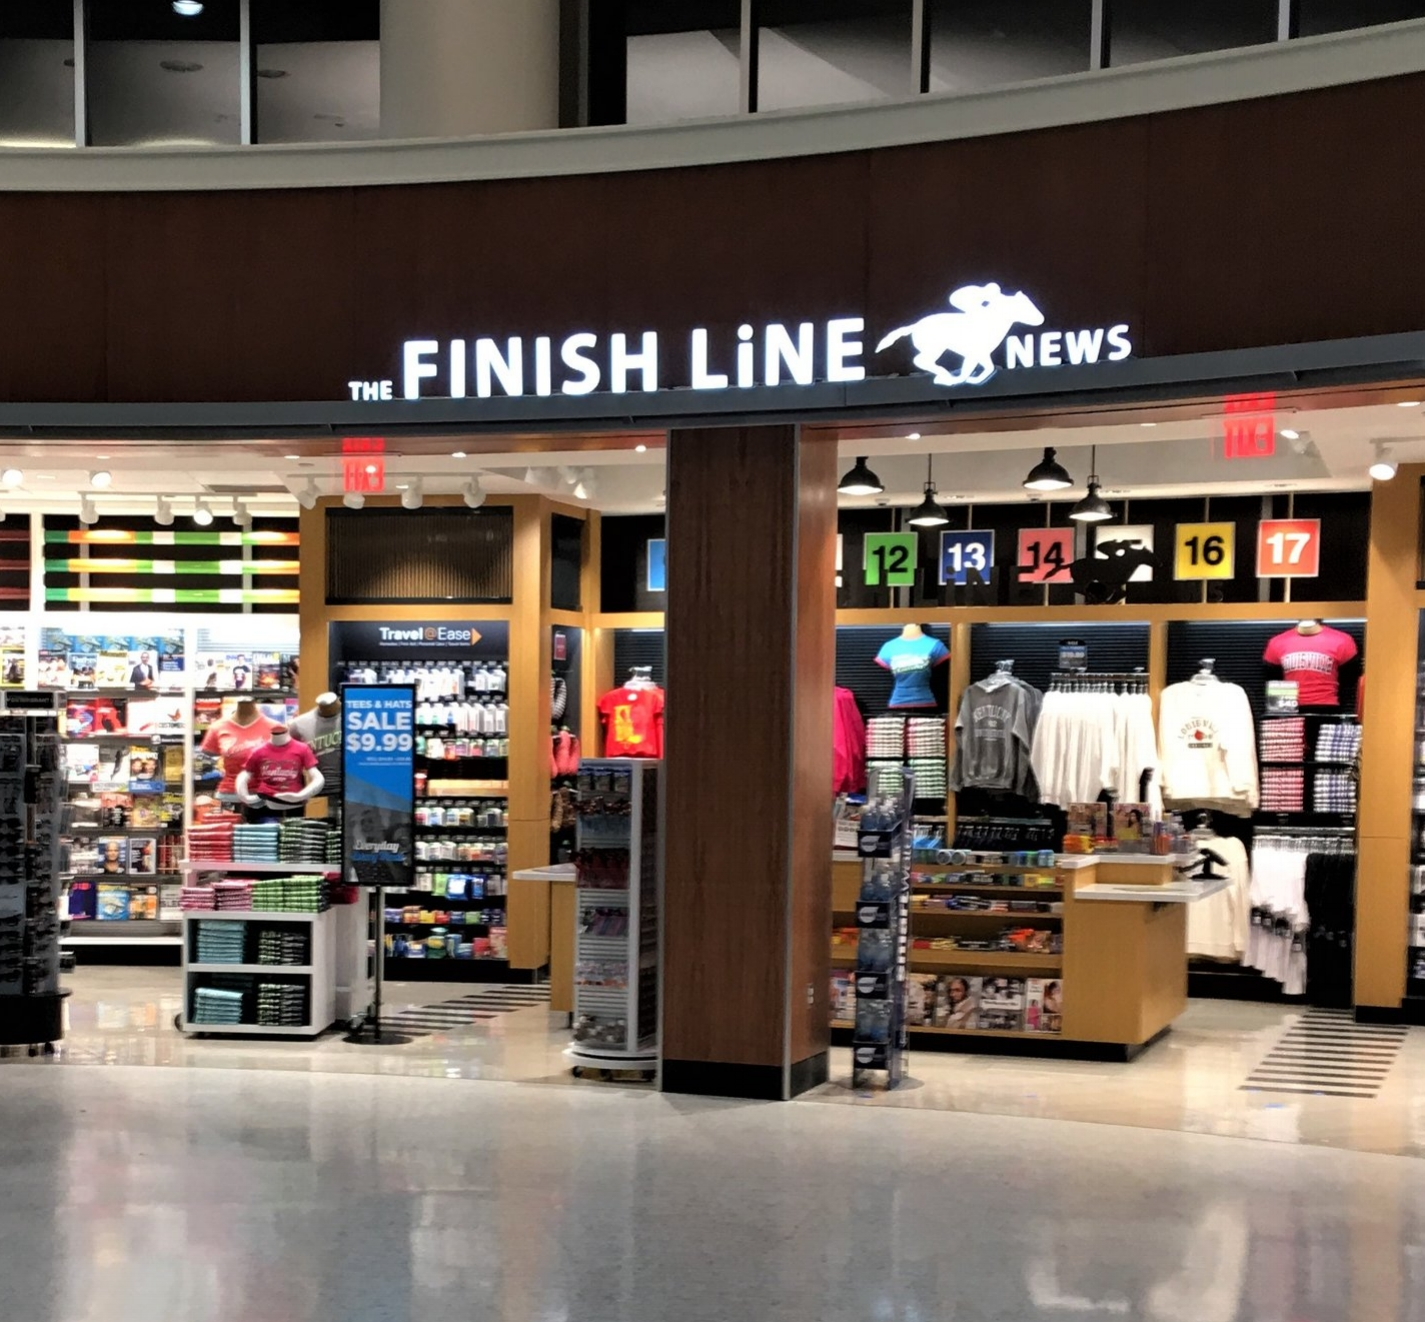 THE FINISH LINE NEWS